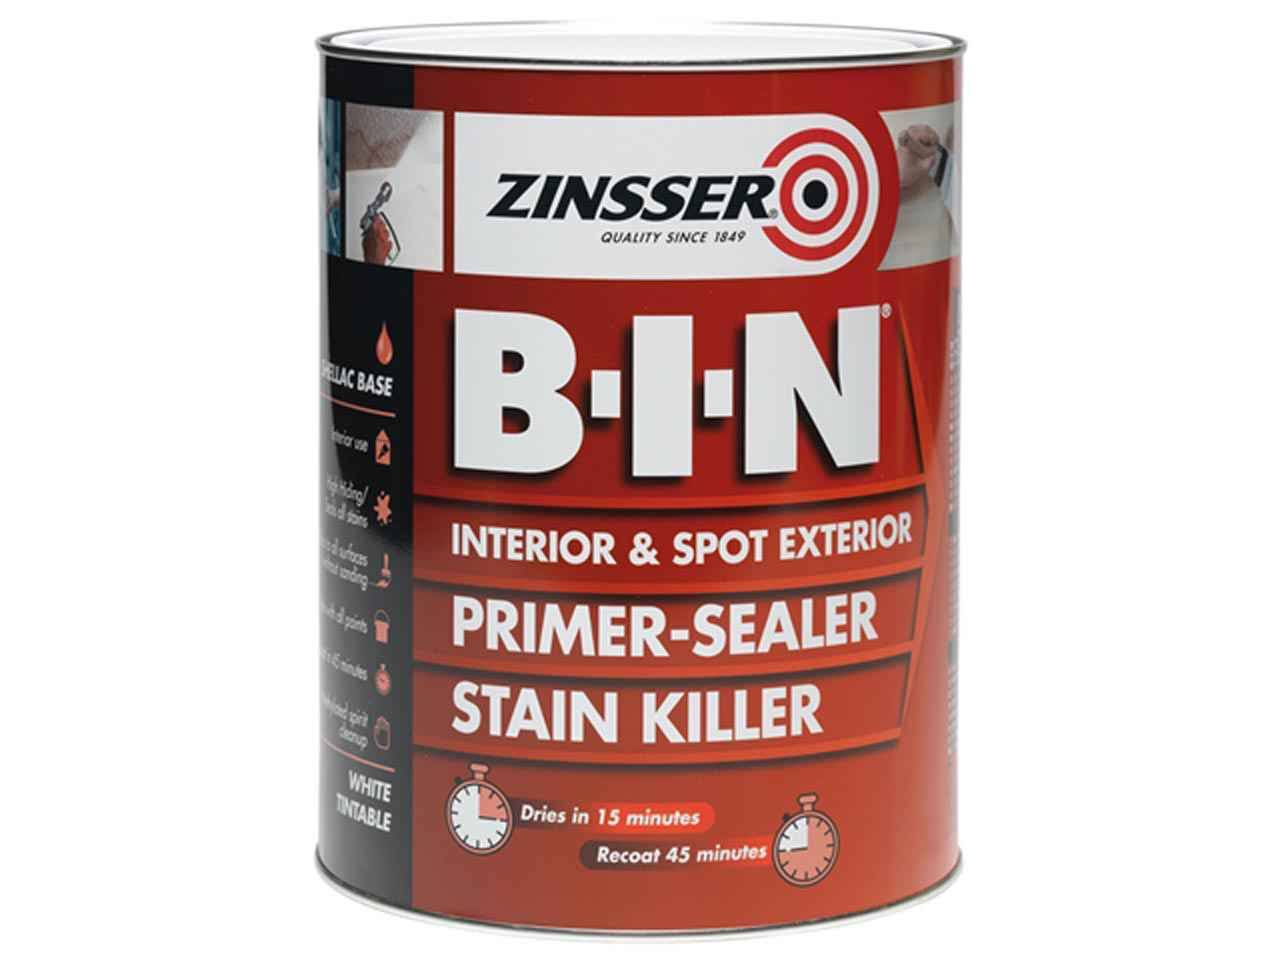 Zinsser Bin Primer Sealer Stain Killer - White, 1l